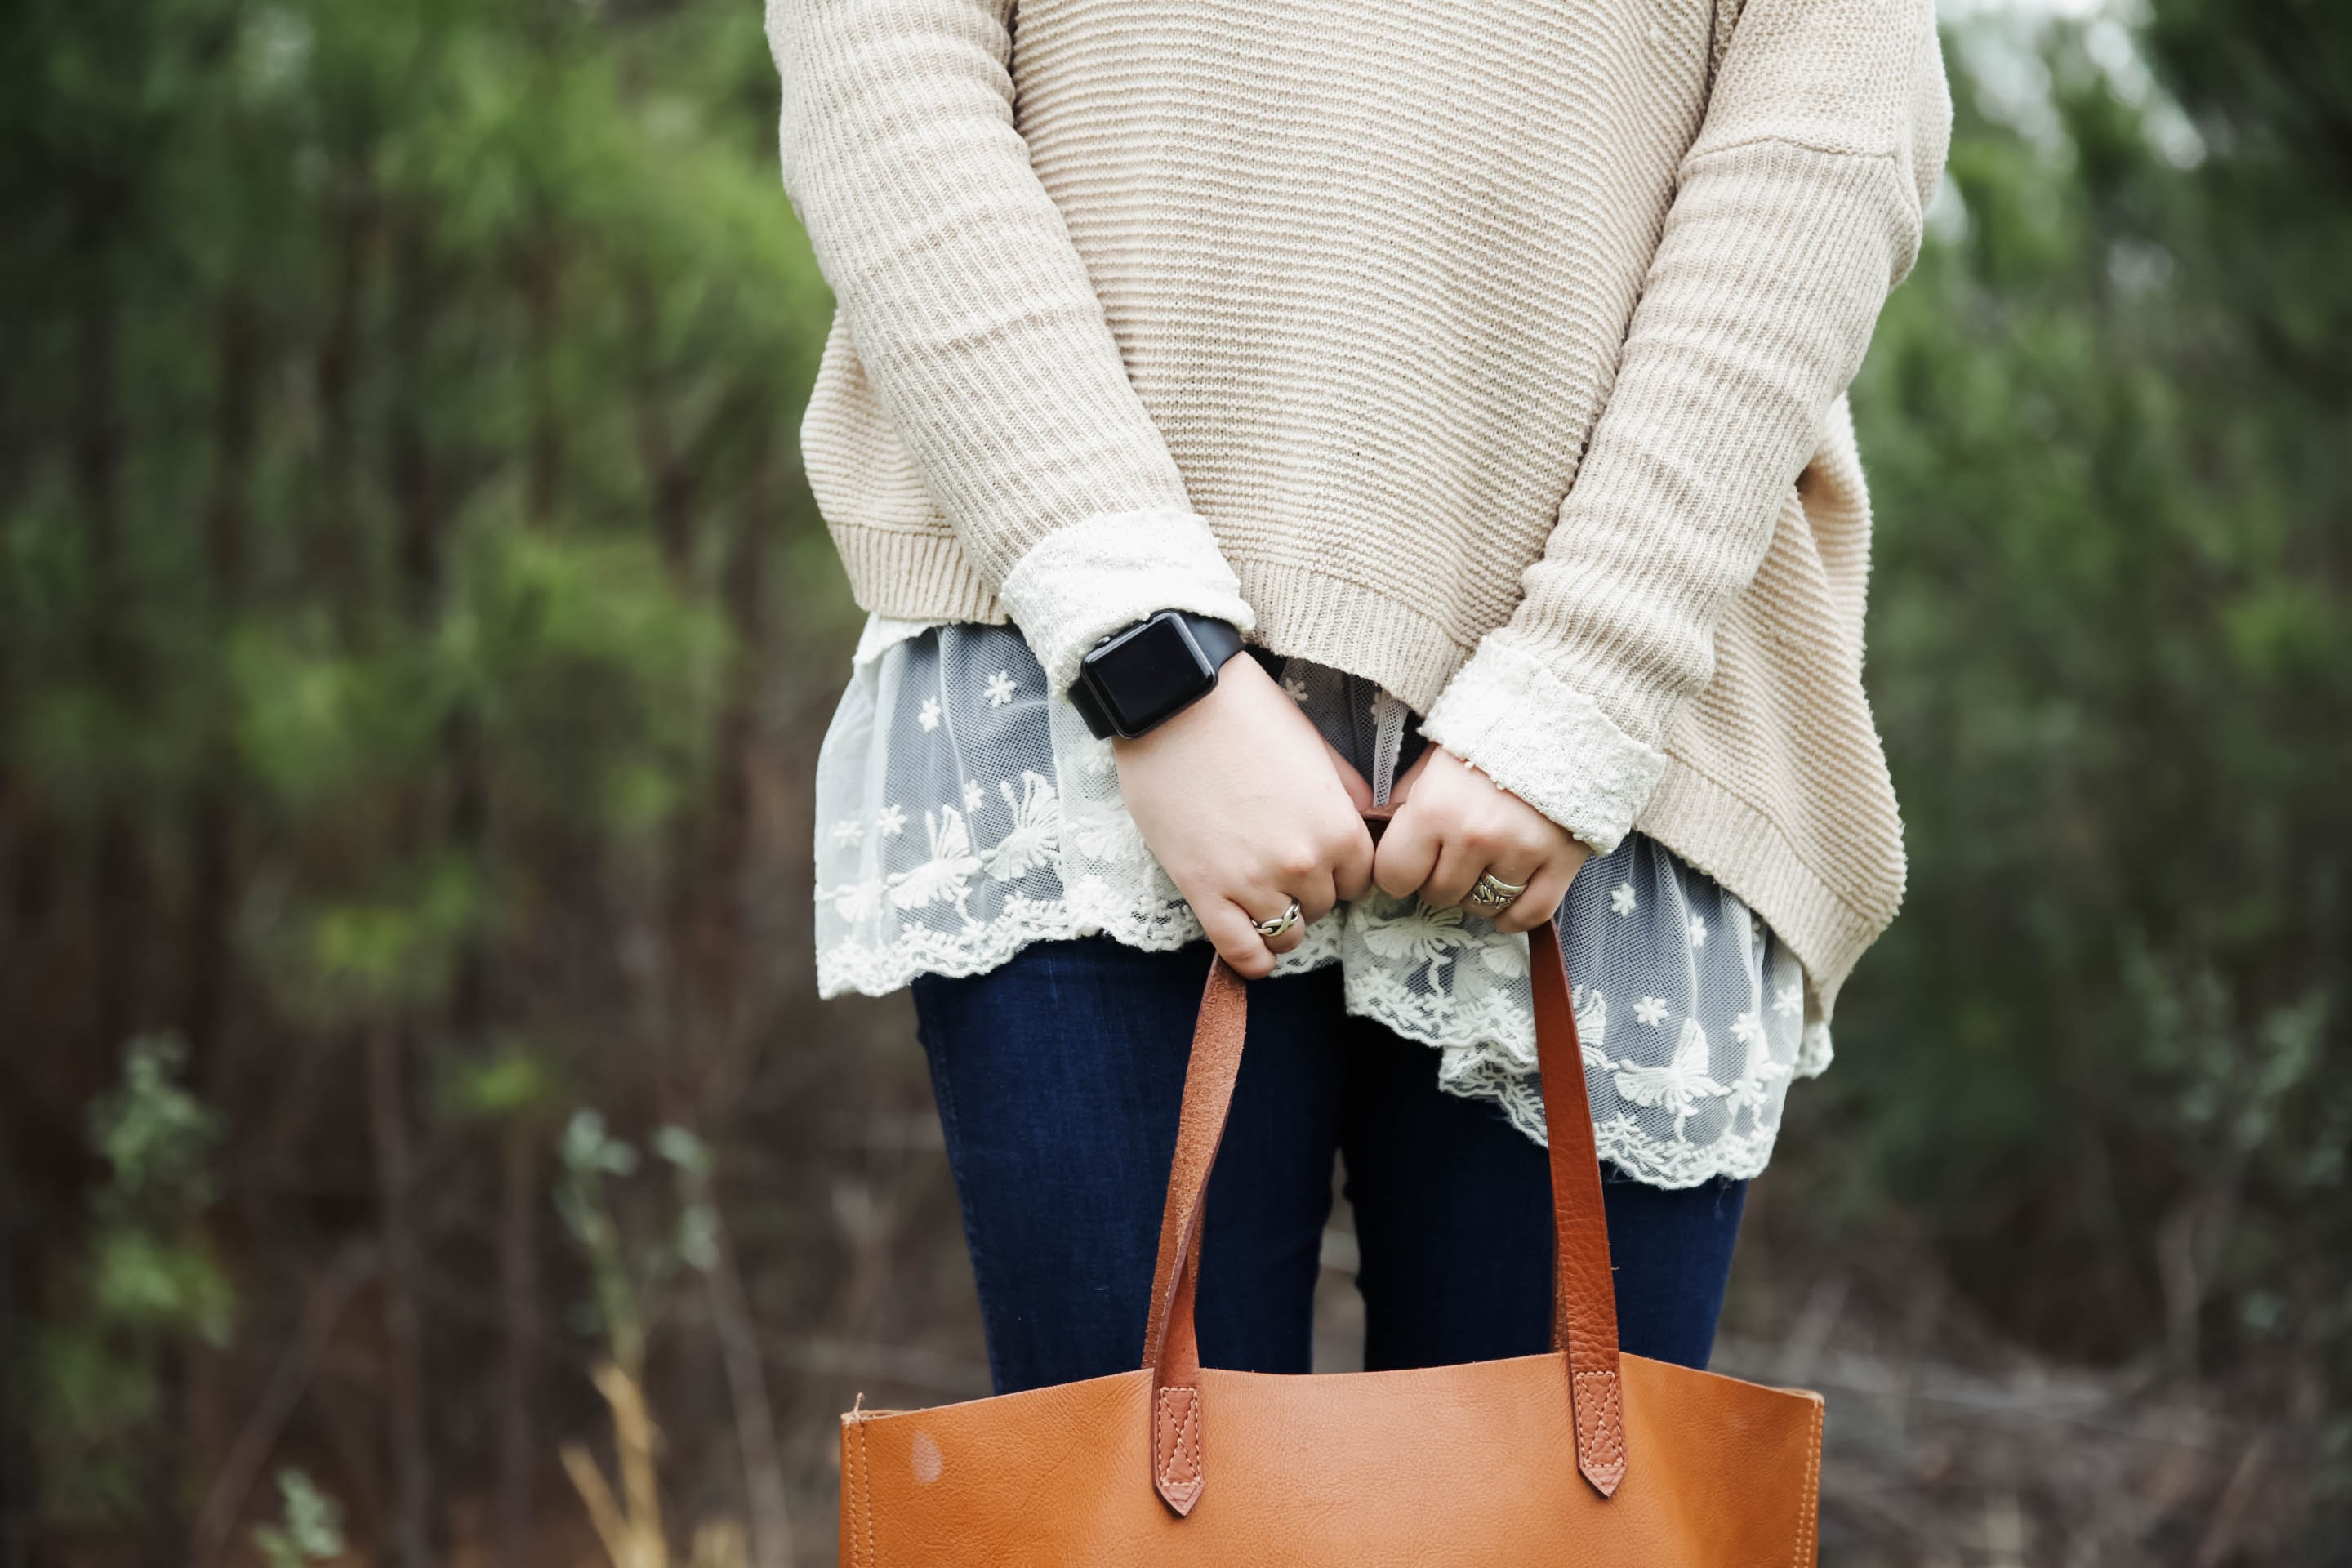 A woman wearing a sweater and an Apple watch, holding a leather bag in Suwanee